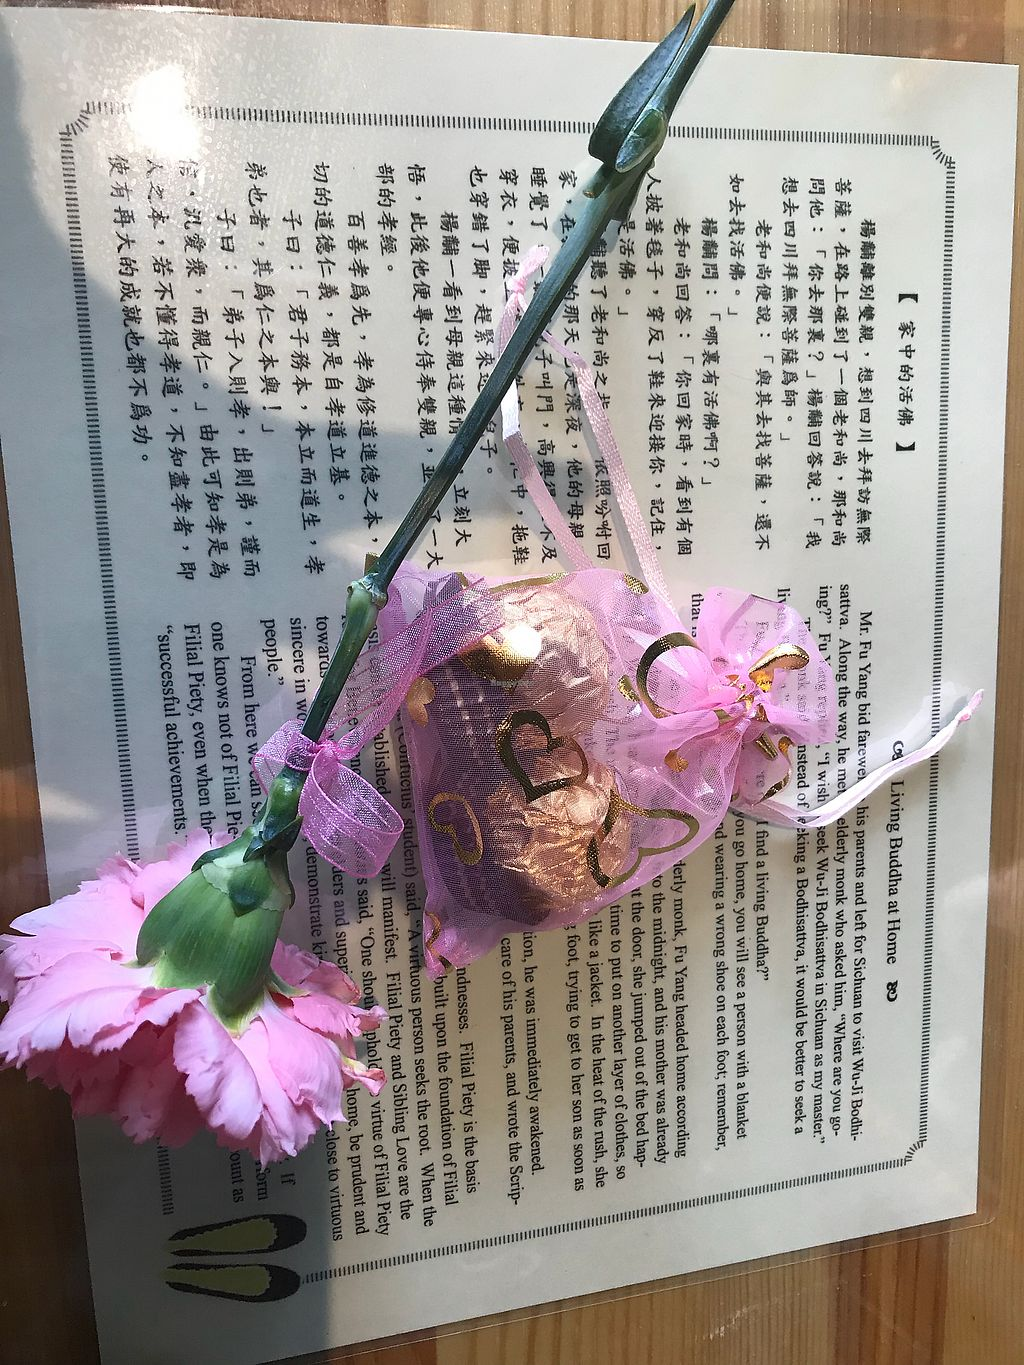 """Photo of Sweet Veggie  by <a href=""""/members/profile/RachelYu"""">RachelYu</a> <br/>Mother's Day they gave out mothers flower and chocolates. How thoughtful <br/> May 13, 2018  - <a href='/contact/abuse/image/111007/399342'>Report</a>"""